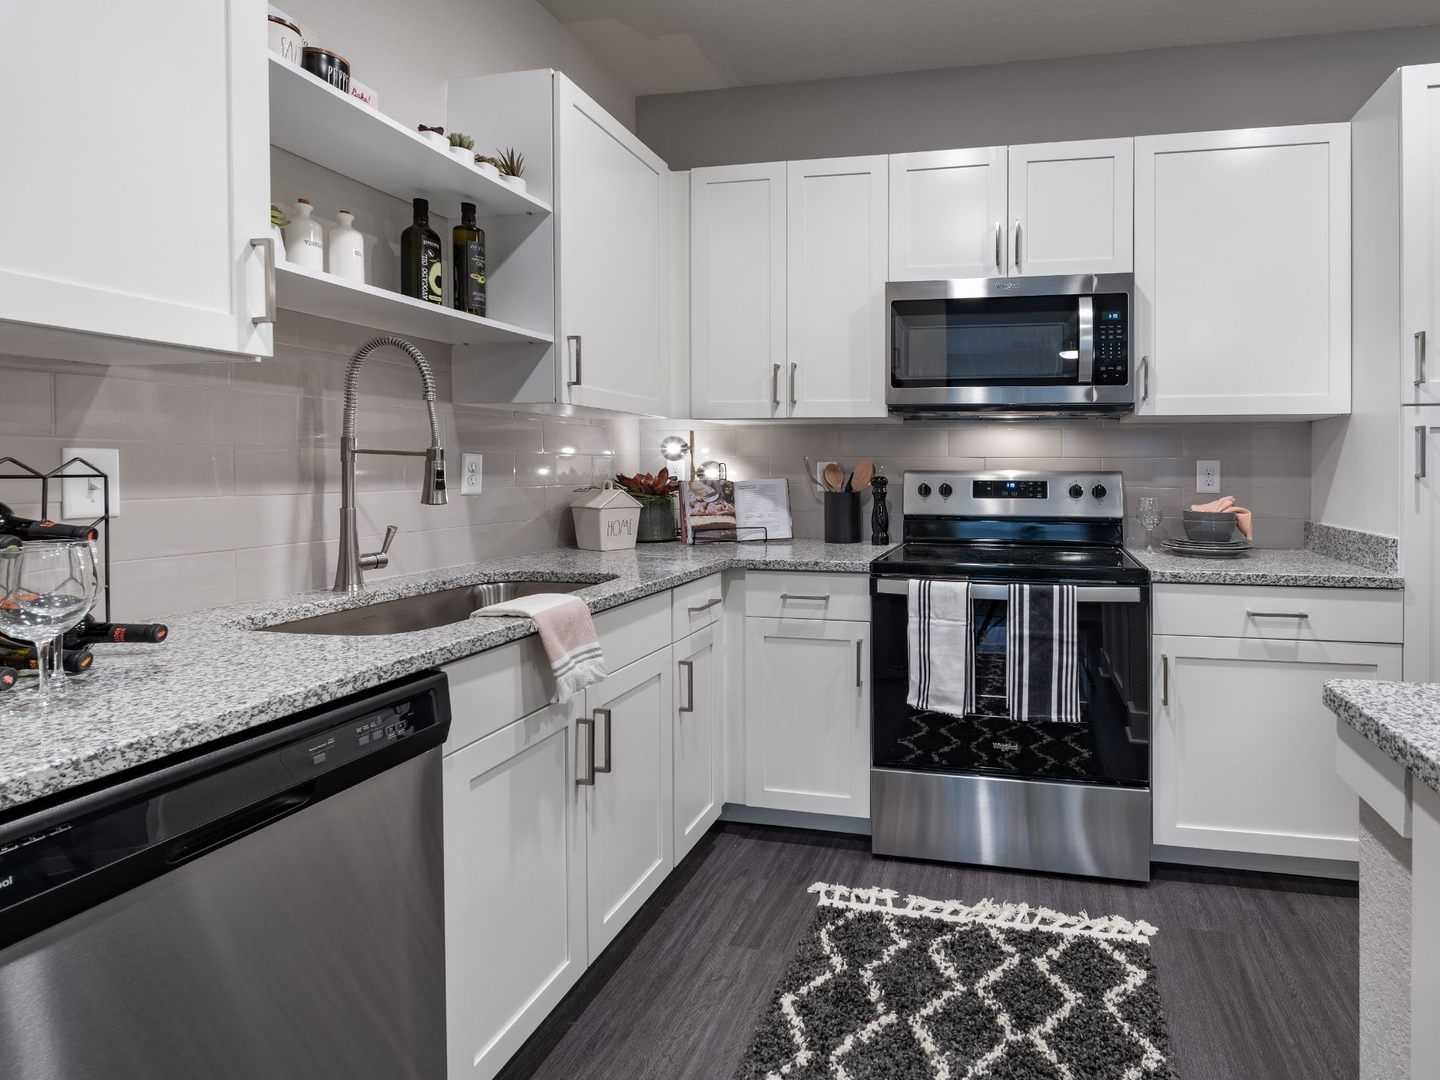 Apartment kitchen with stainless steel appliances and granite countertops